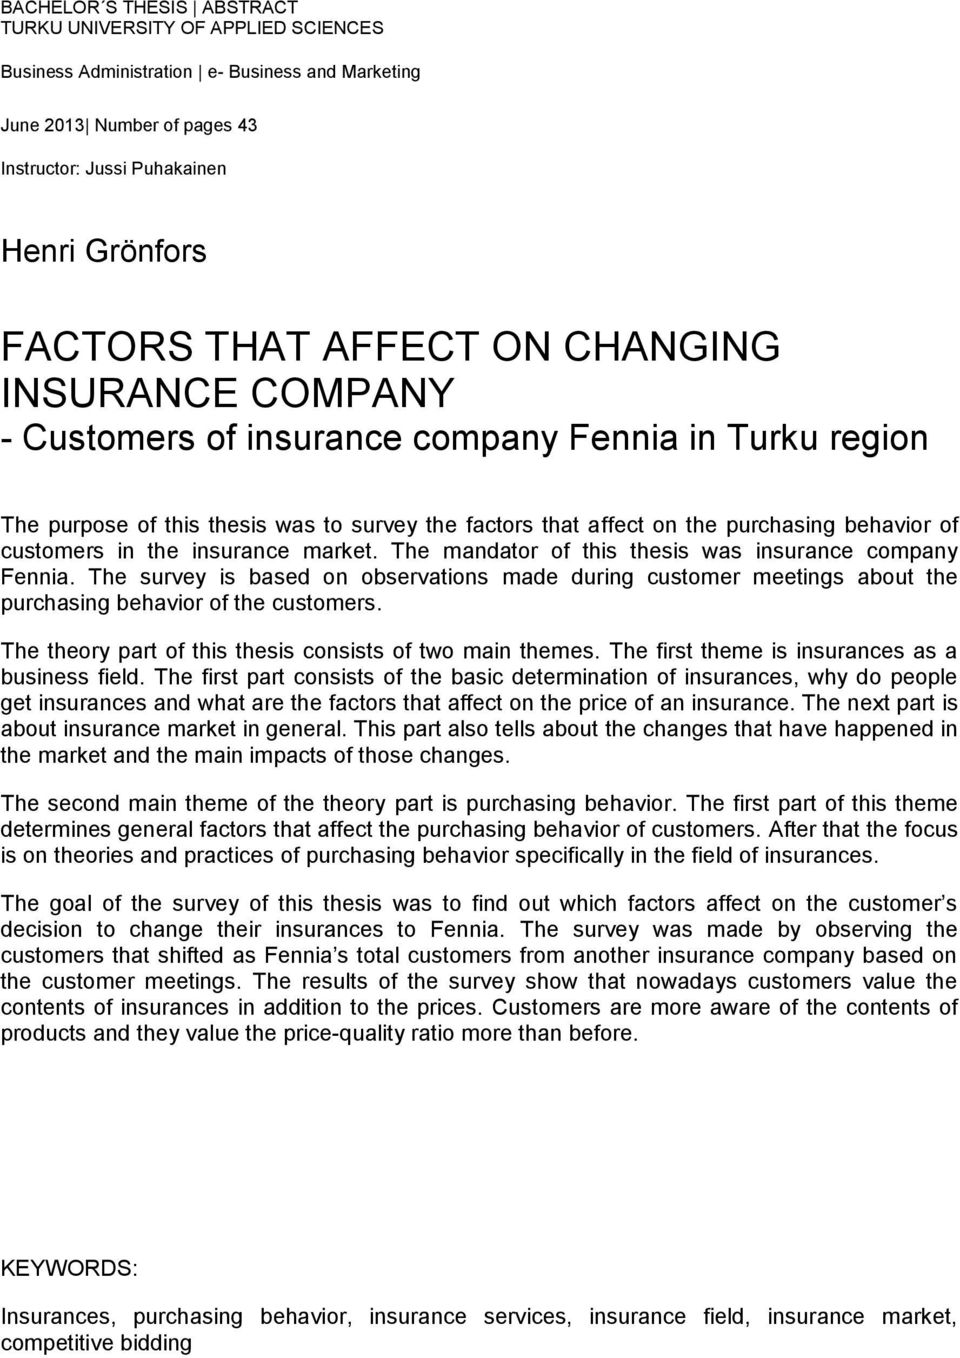 in the insurance market. The mandator of this thesis was insurance company Fennia. The survey is based on observations made during customer meetings about the purchasing behavior of the customers.